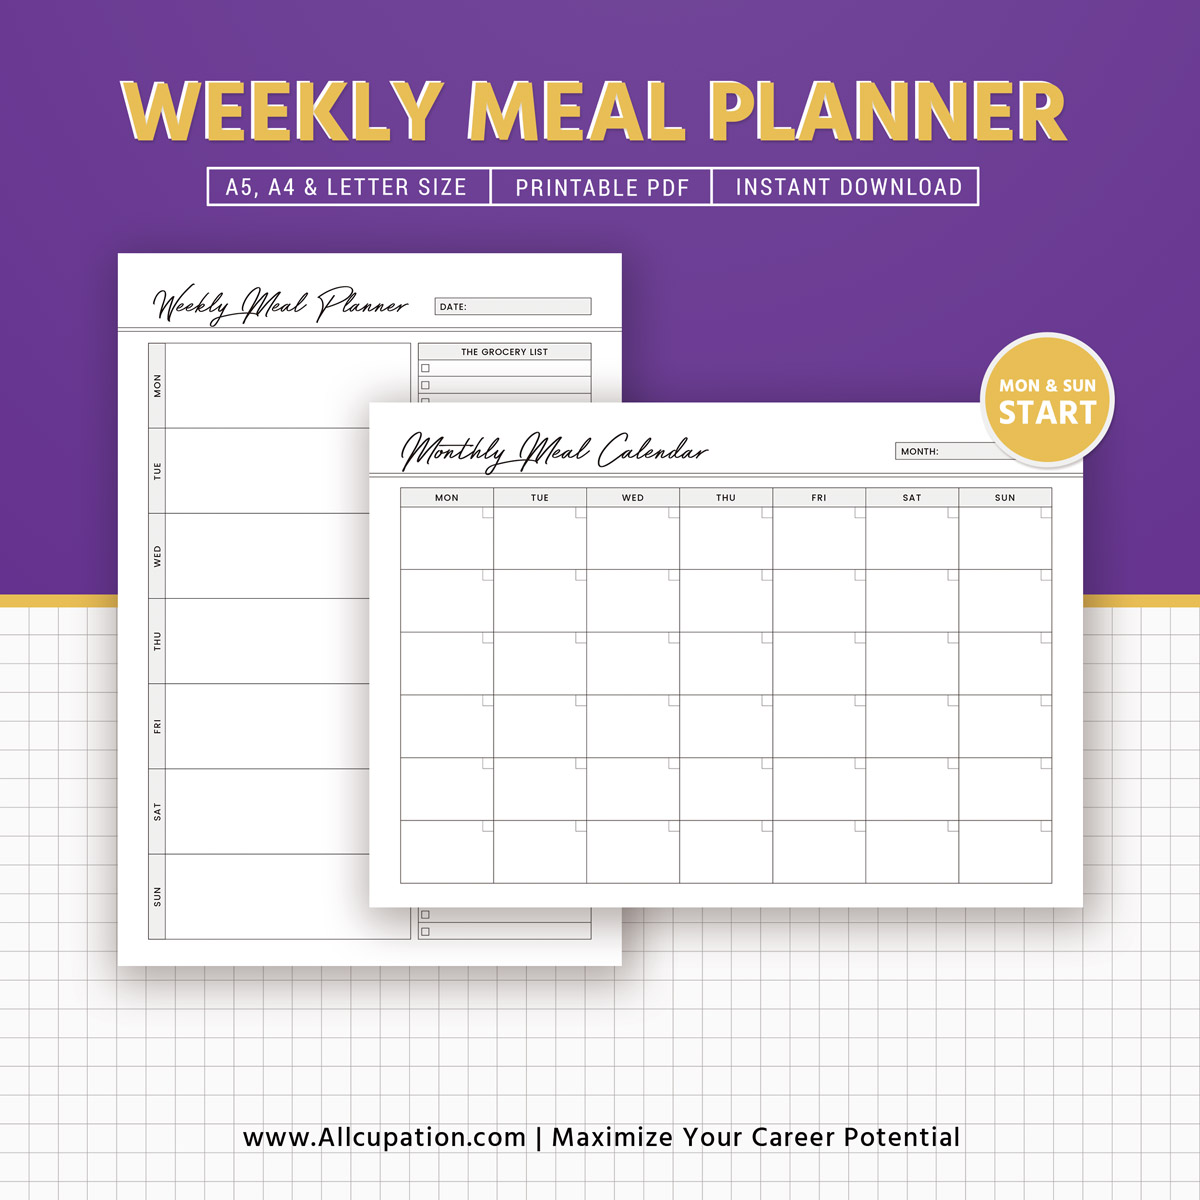 weekly meal planner inserts  menu planner printable  meal calendar  planner design  best planner